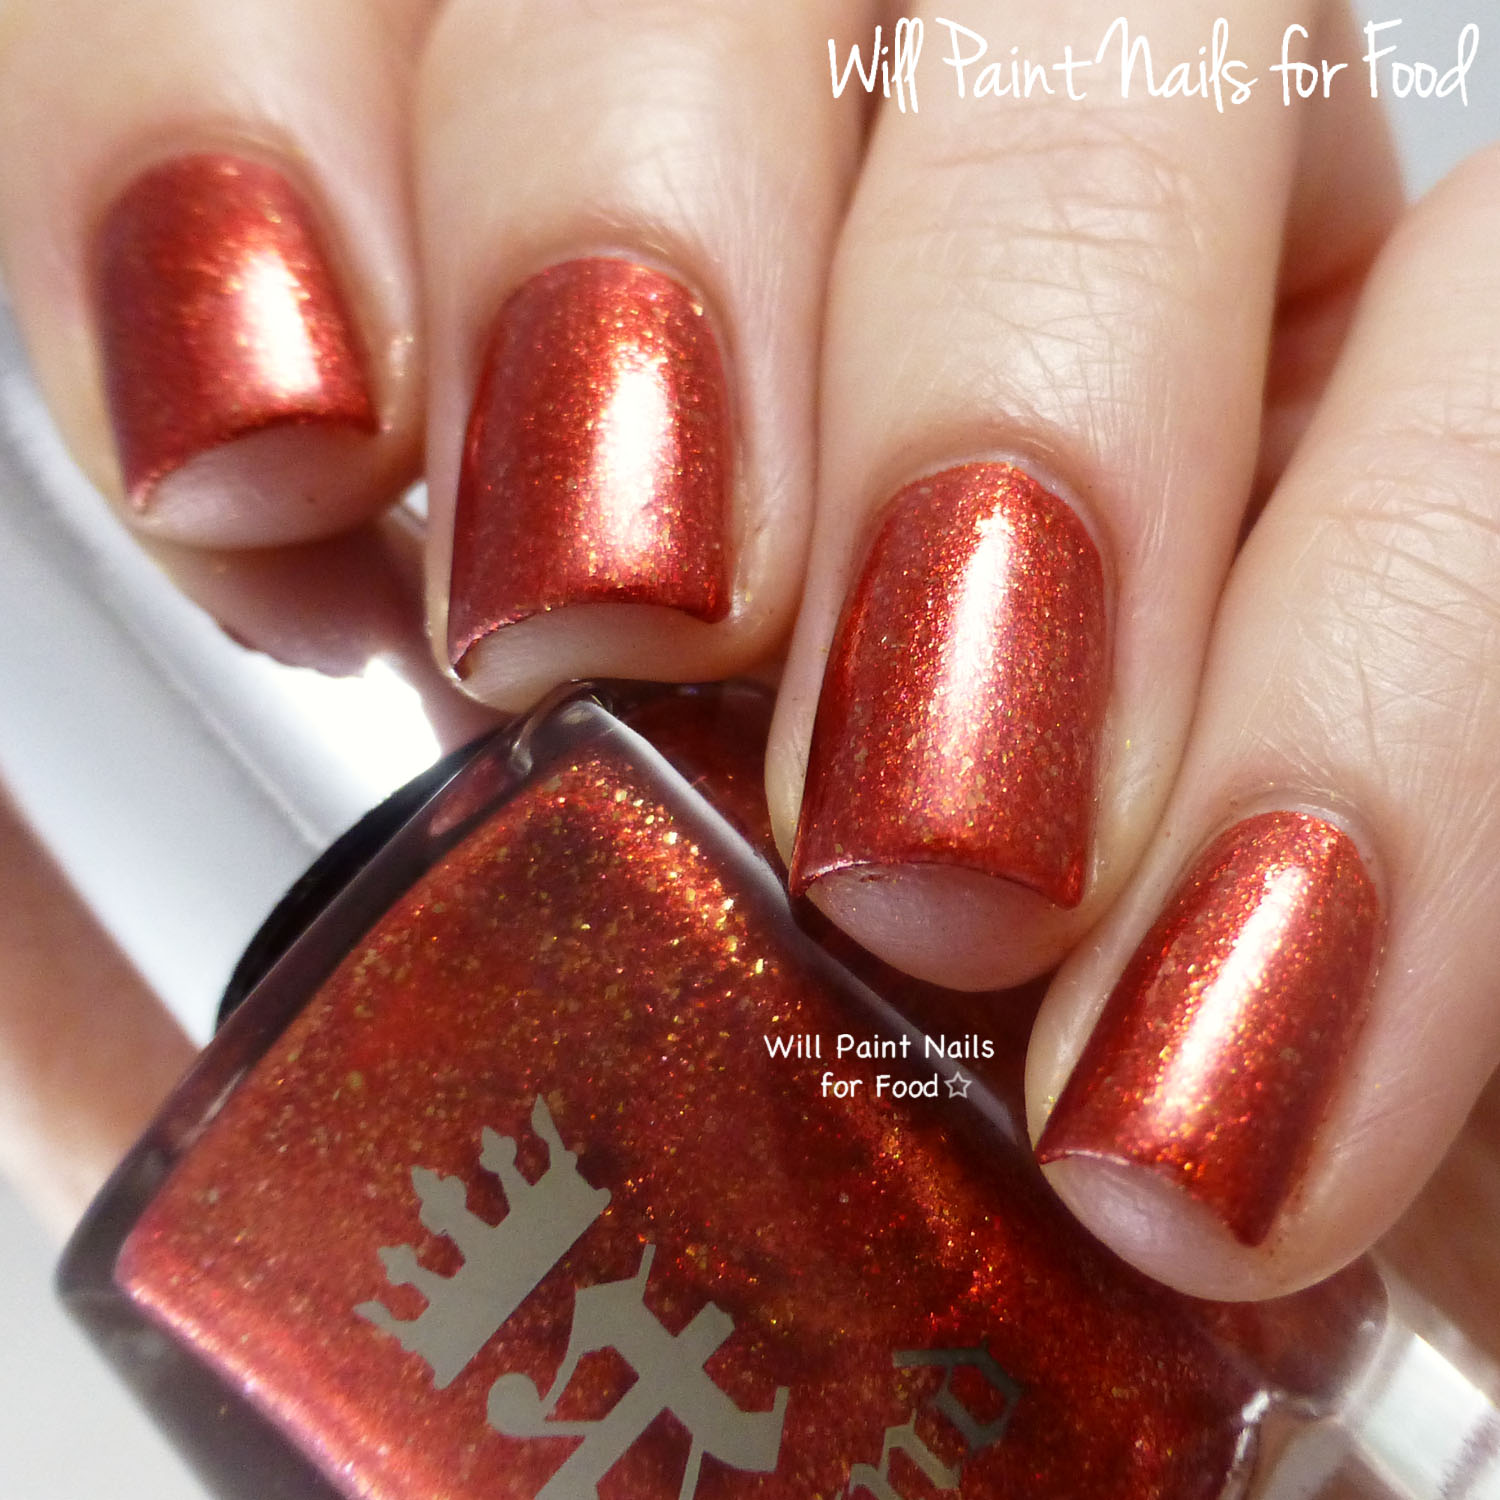 A England Gloriana swatch